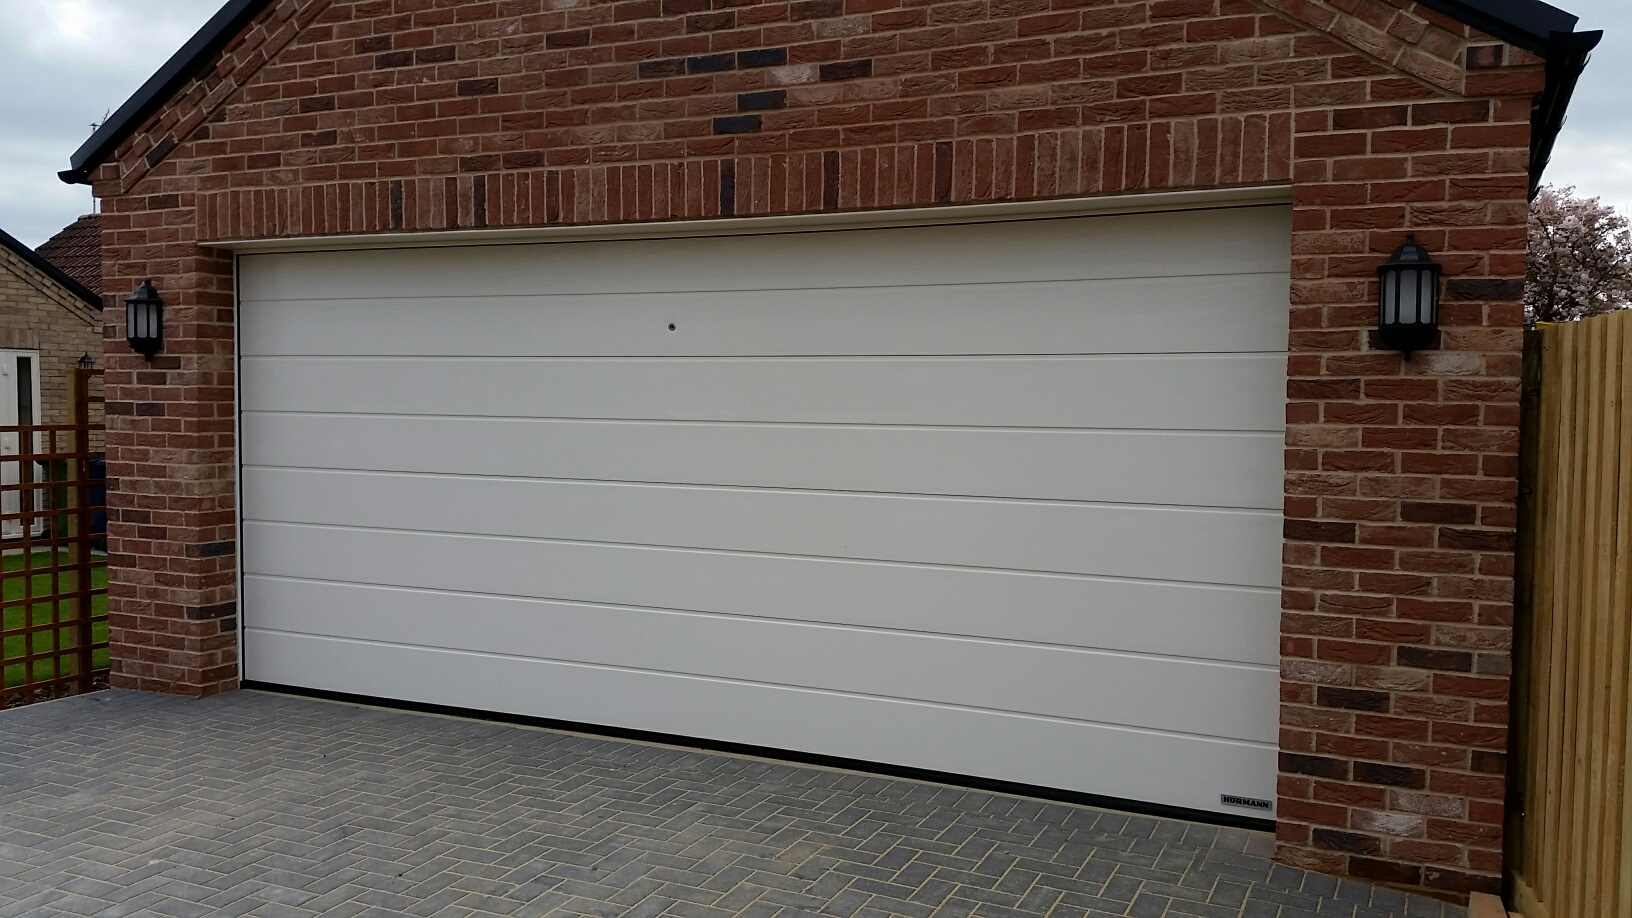 Le Meilleur Hormann Sectional Door Fitted In Brisley Norfolk Today Ce Mois Ci